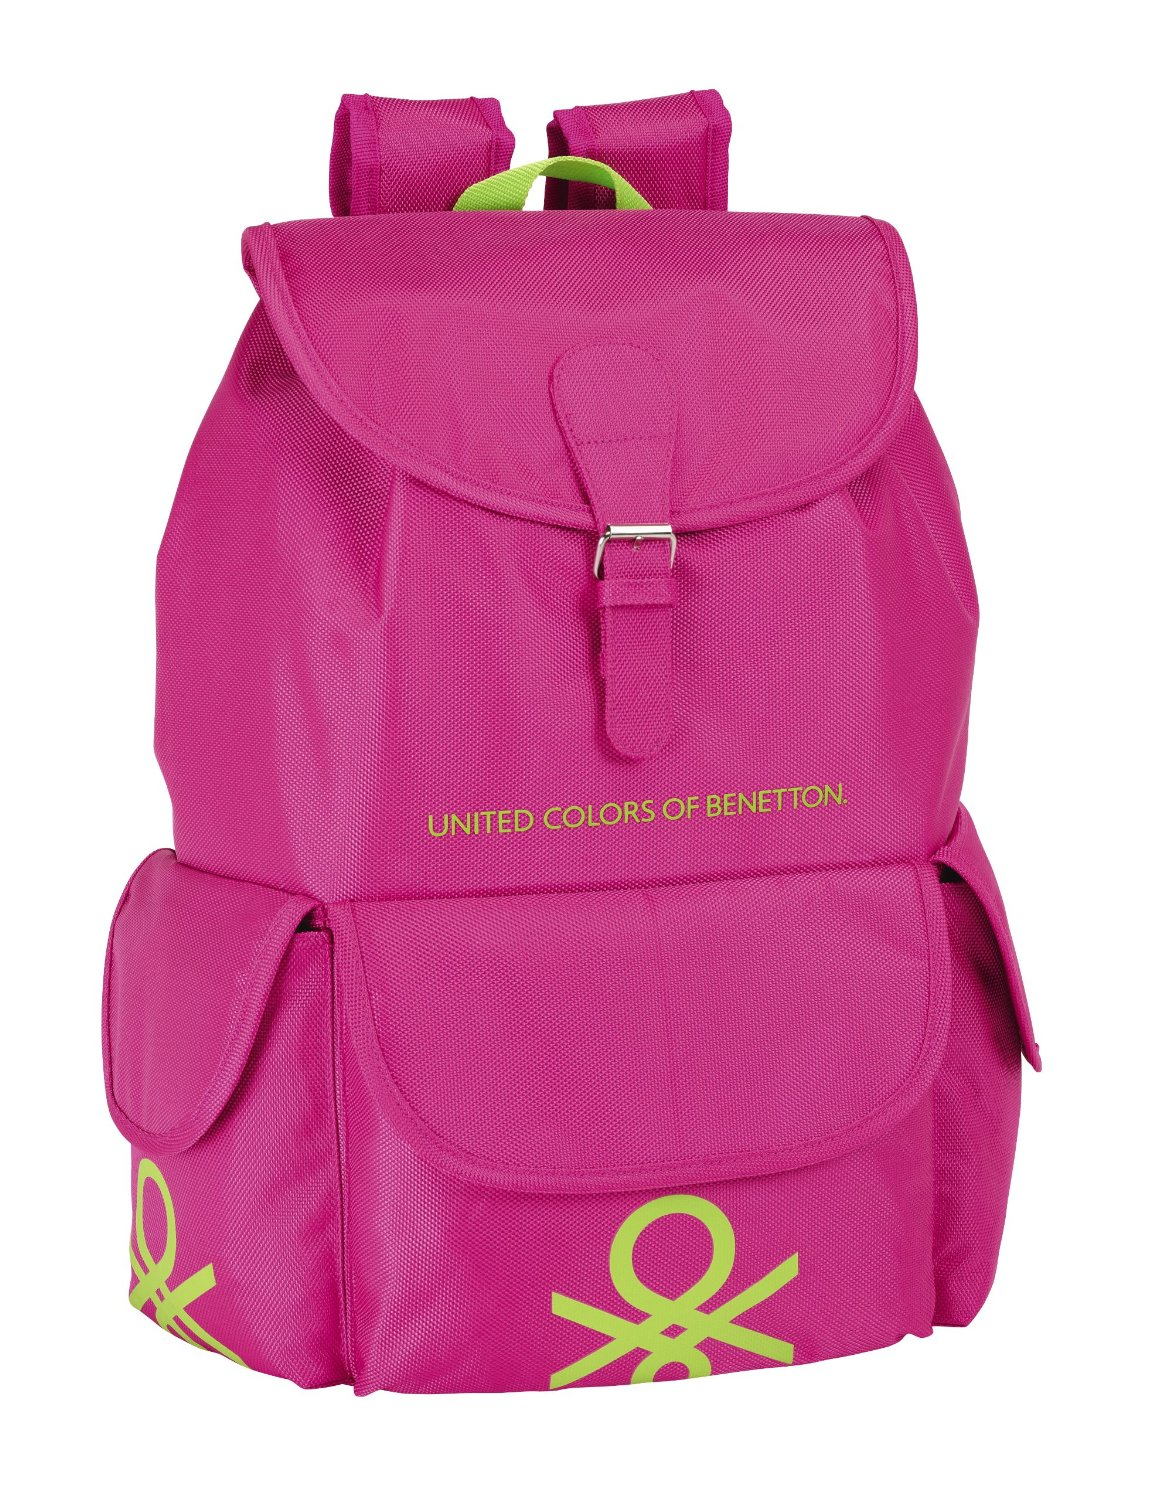 Benetton - Mochila con solapa, color rosa